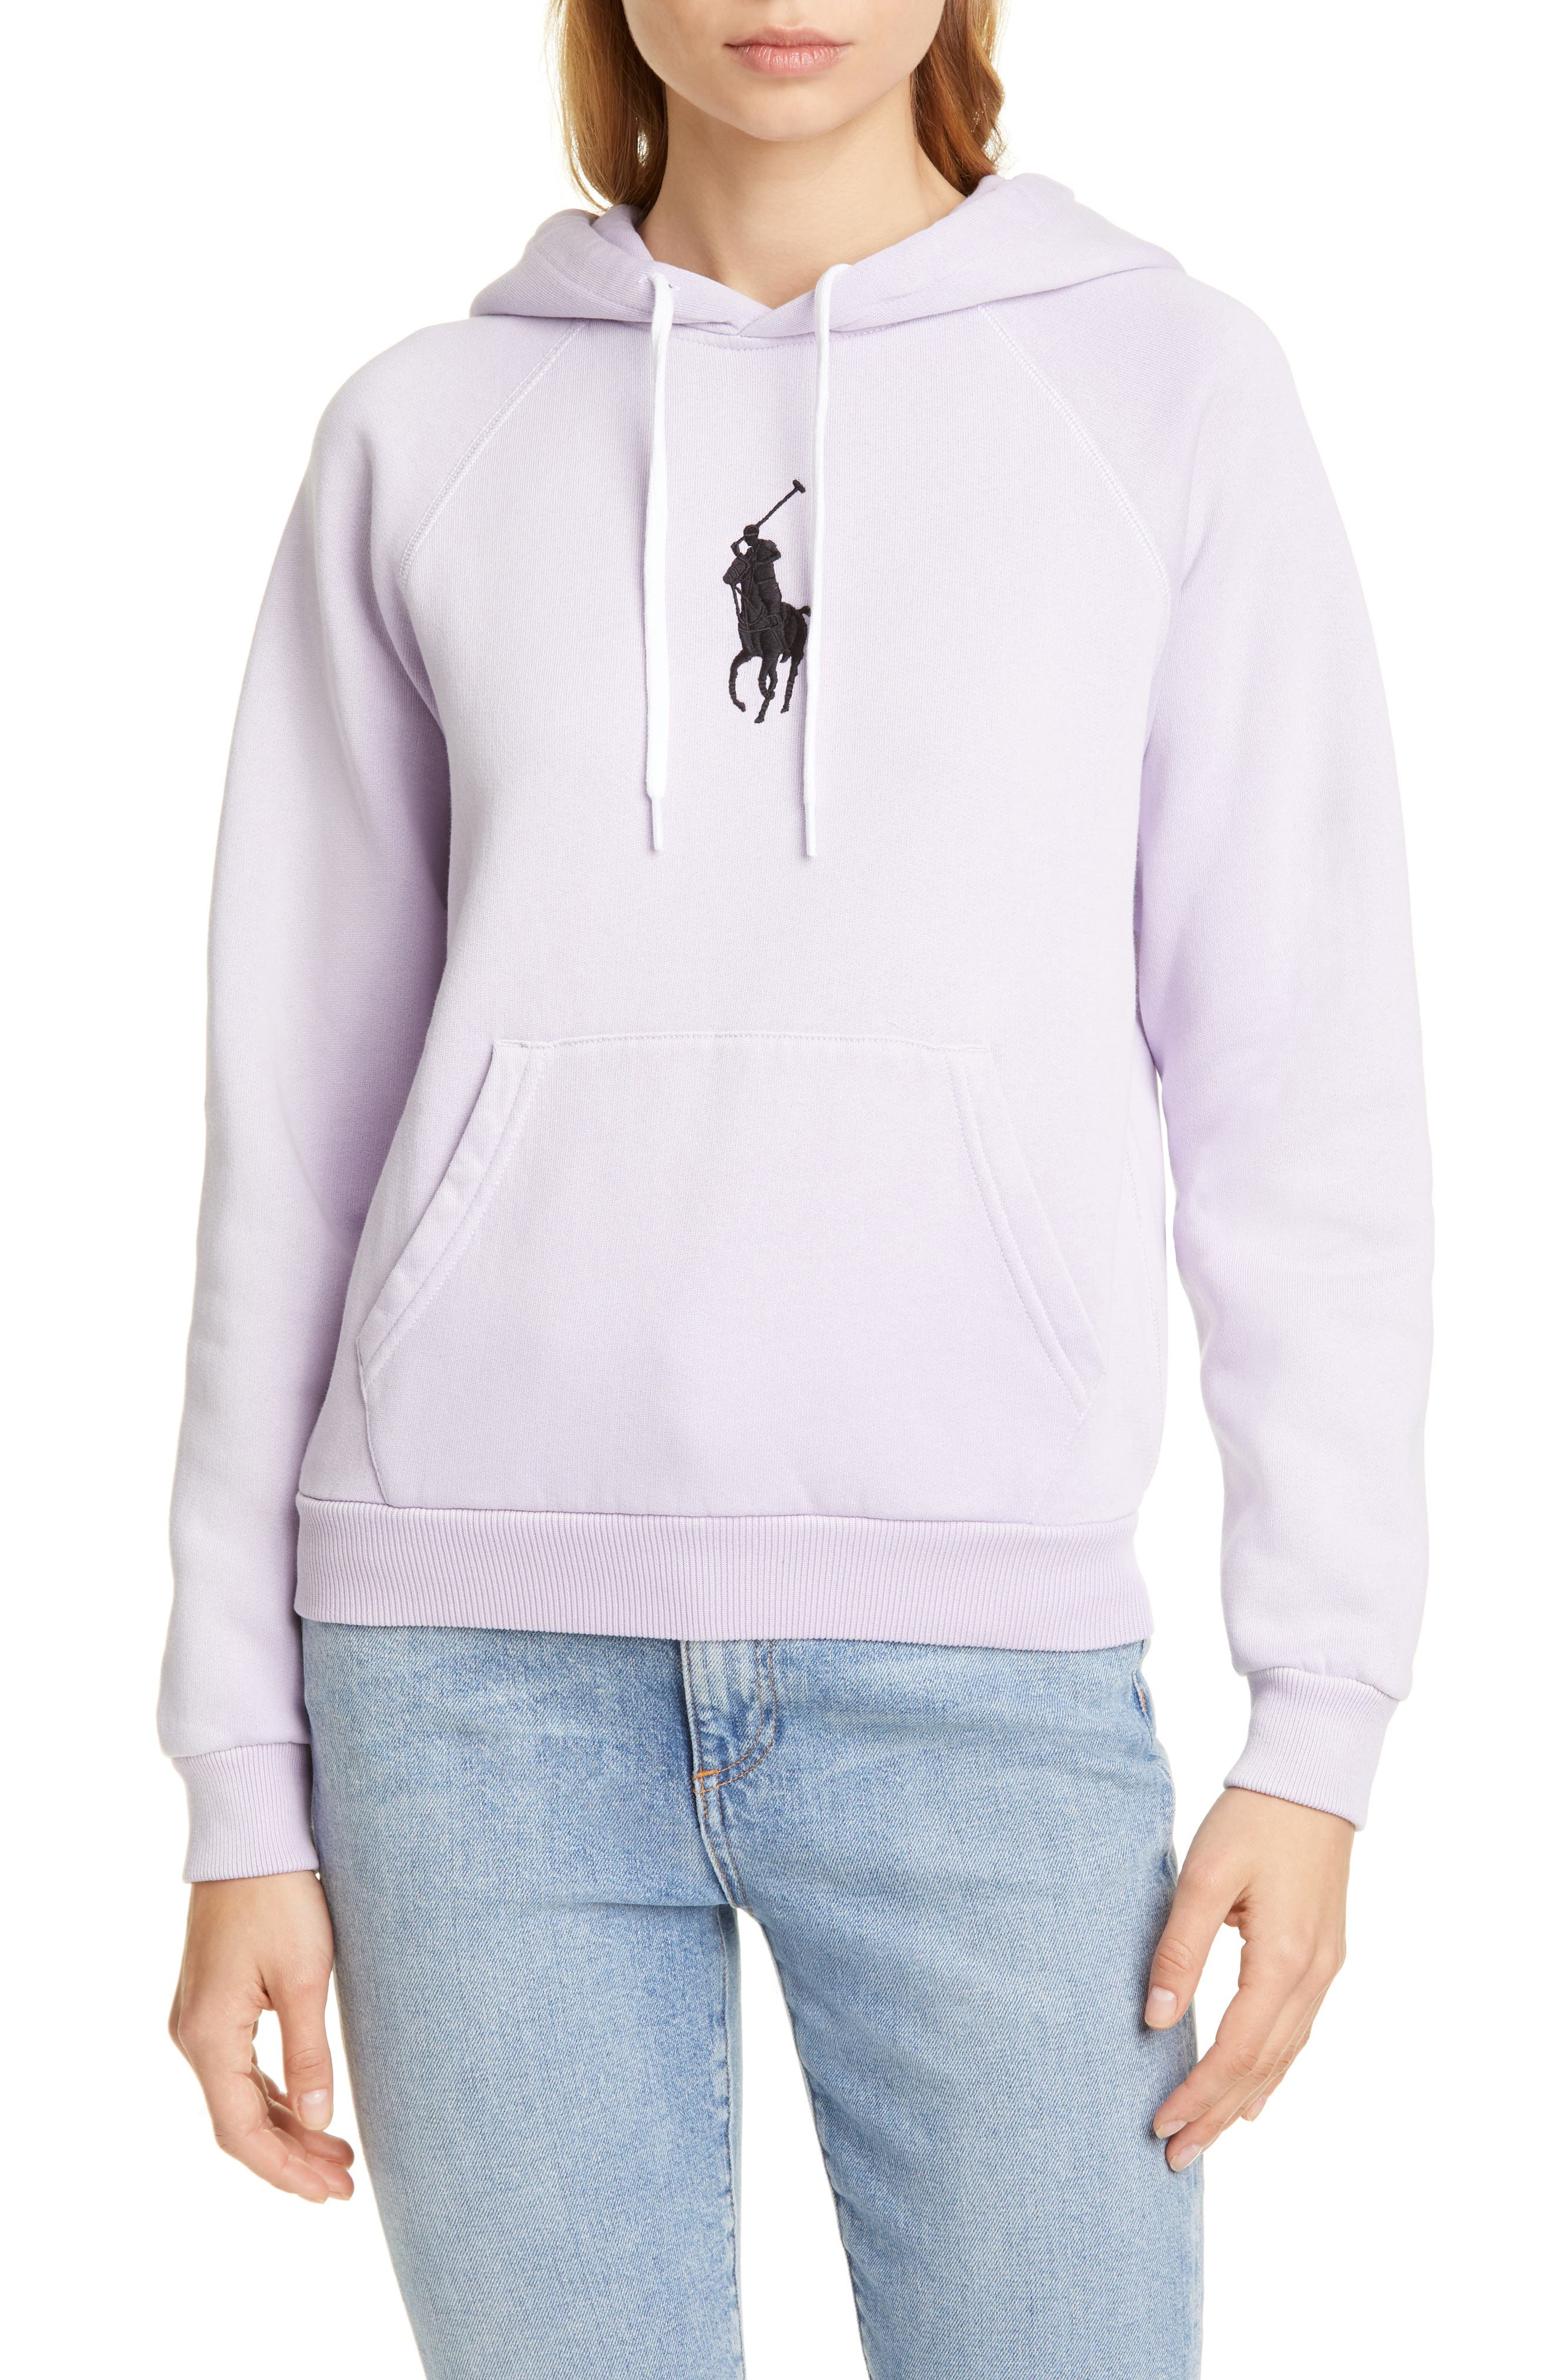 Women's Polo Ralph Lauren Sweatshirts & Hoodies | Nordstrom